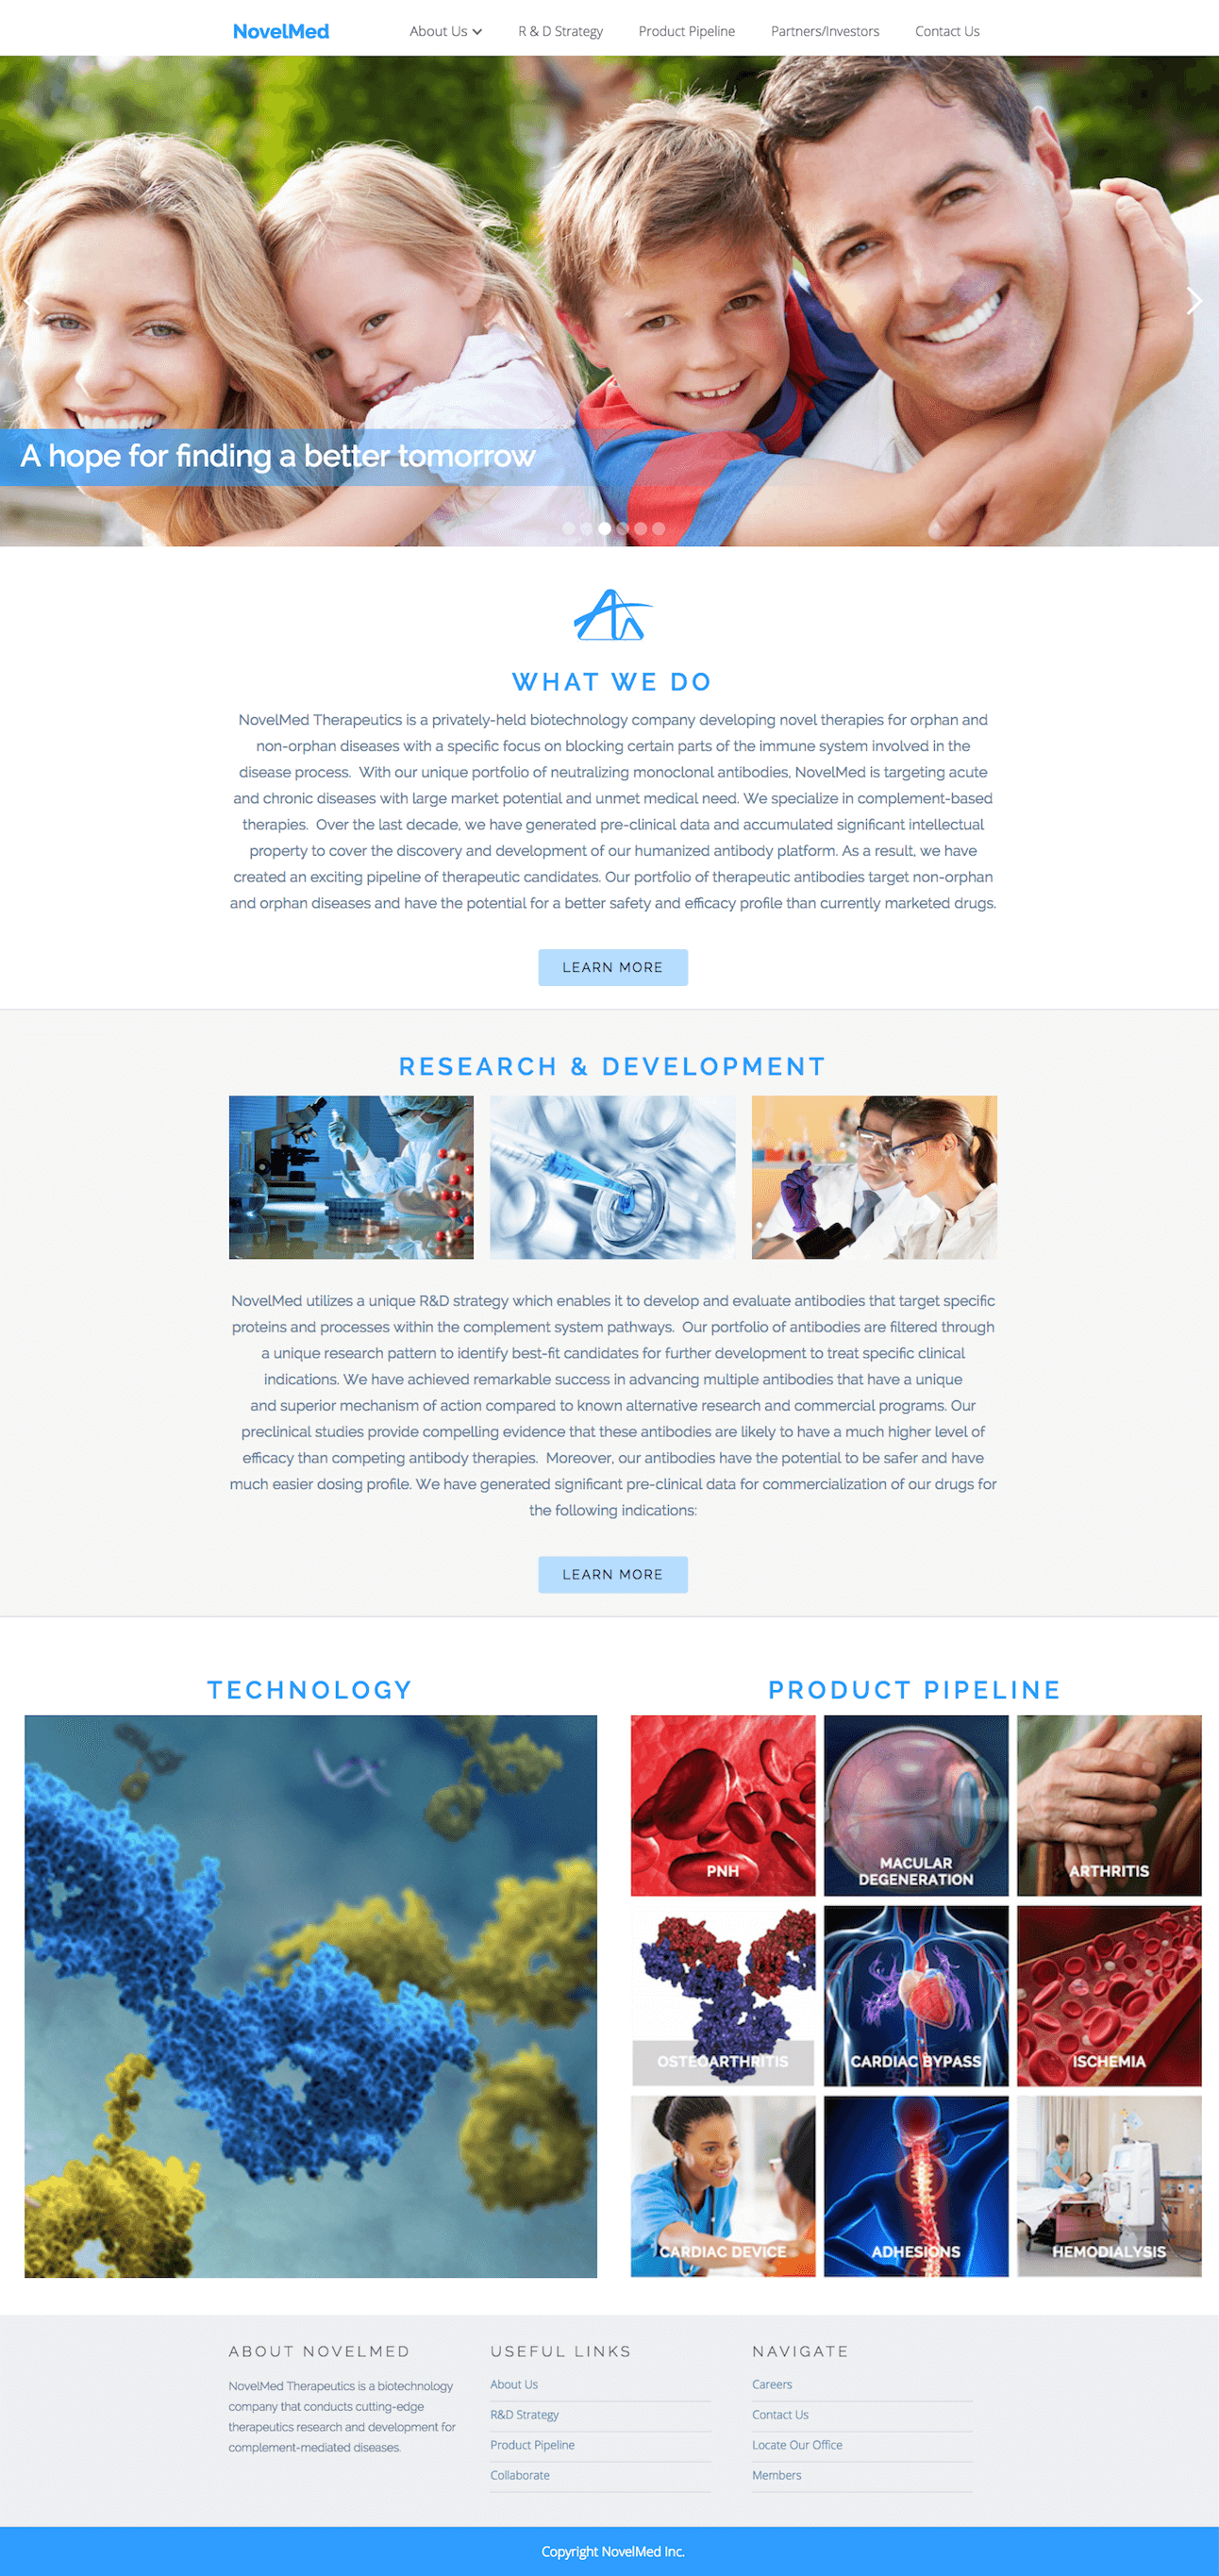 Image of responsive web design case study by Quetra Creative for NovelMed Full Website Browser